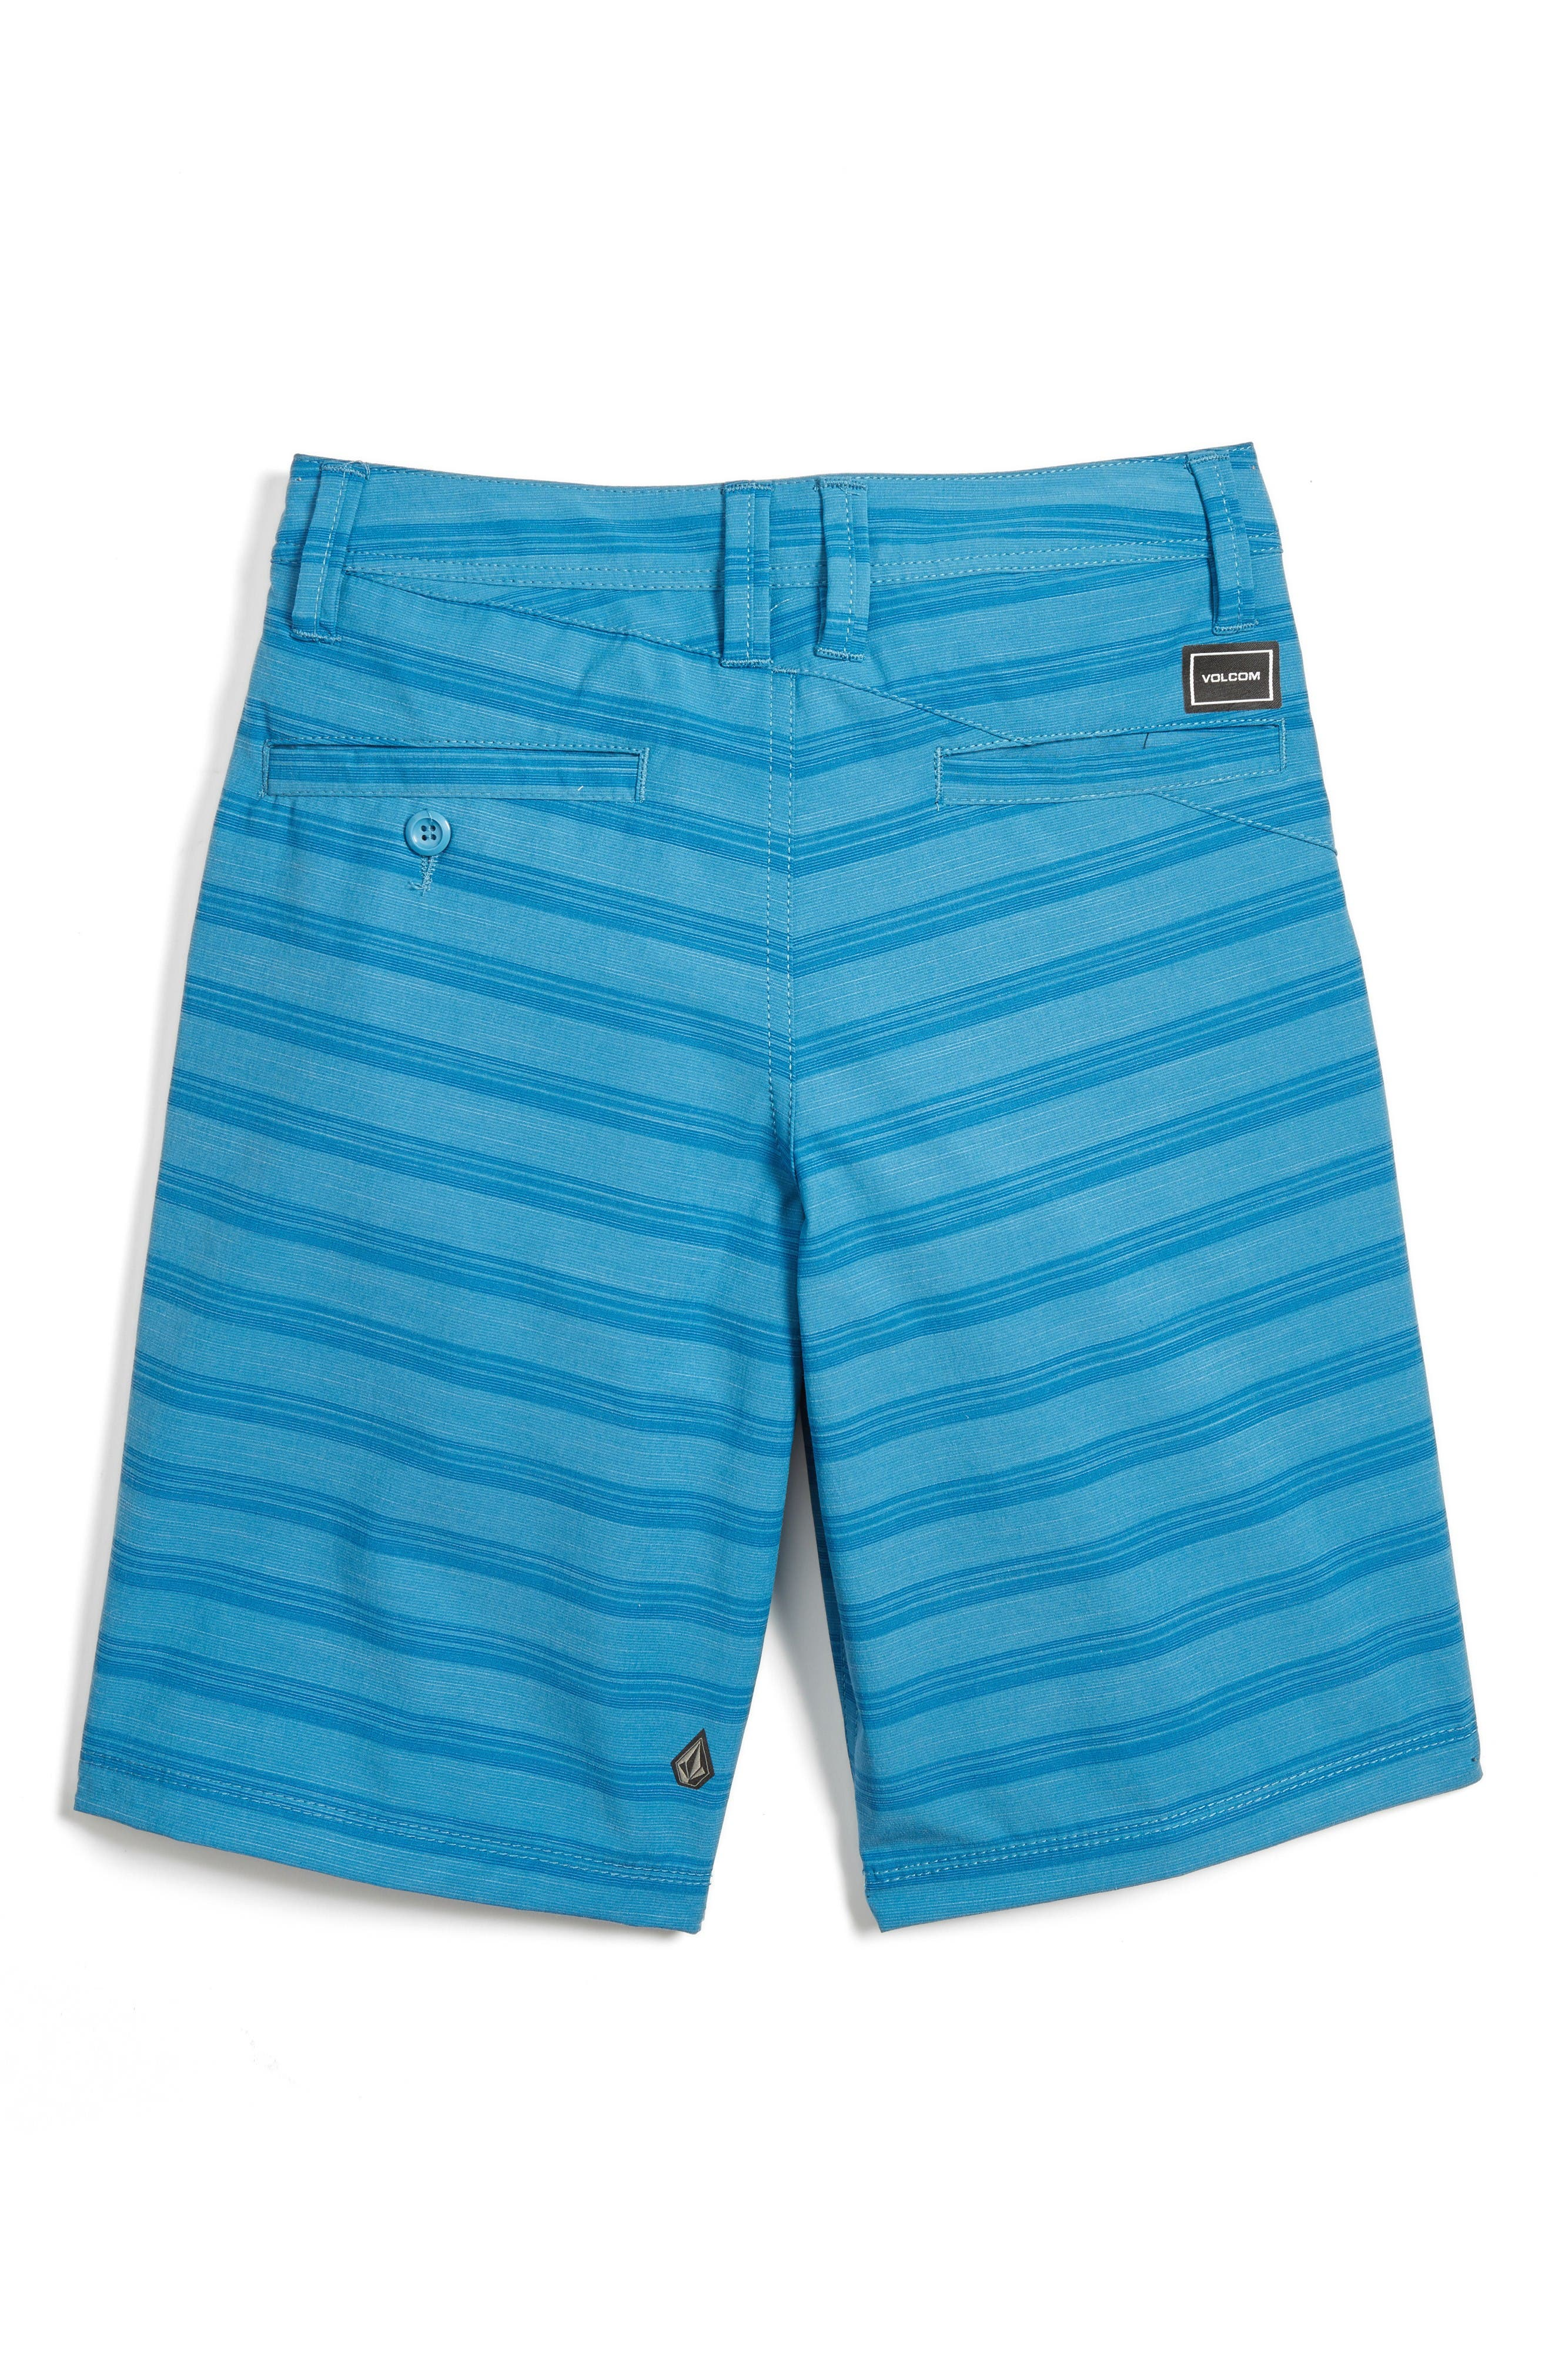 Alternate Image 2  - Volcom Surf N' Turf Hybrid Shorts (Big Boys)